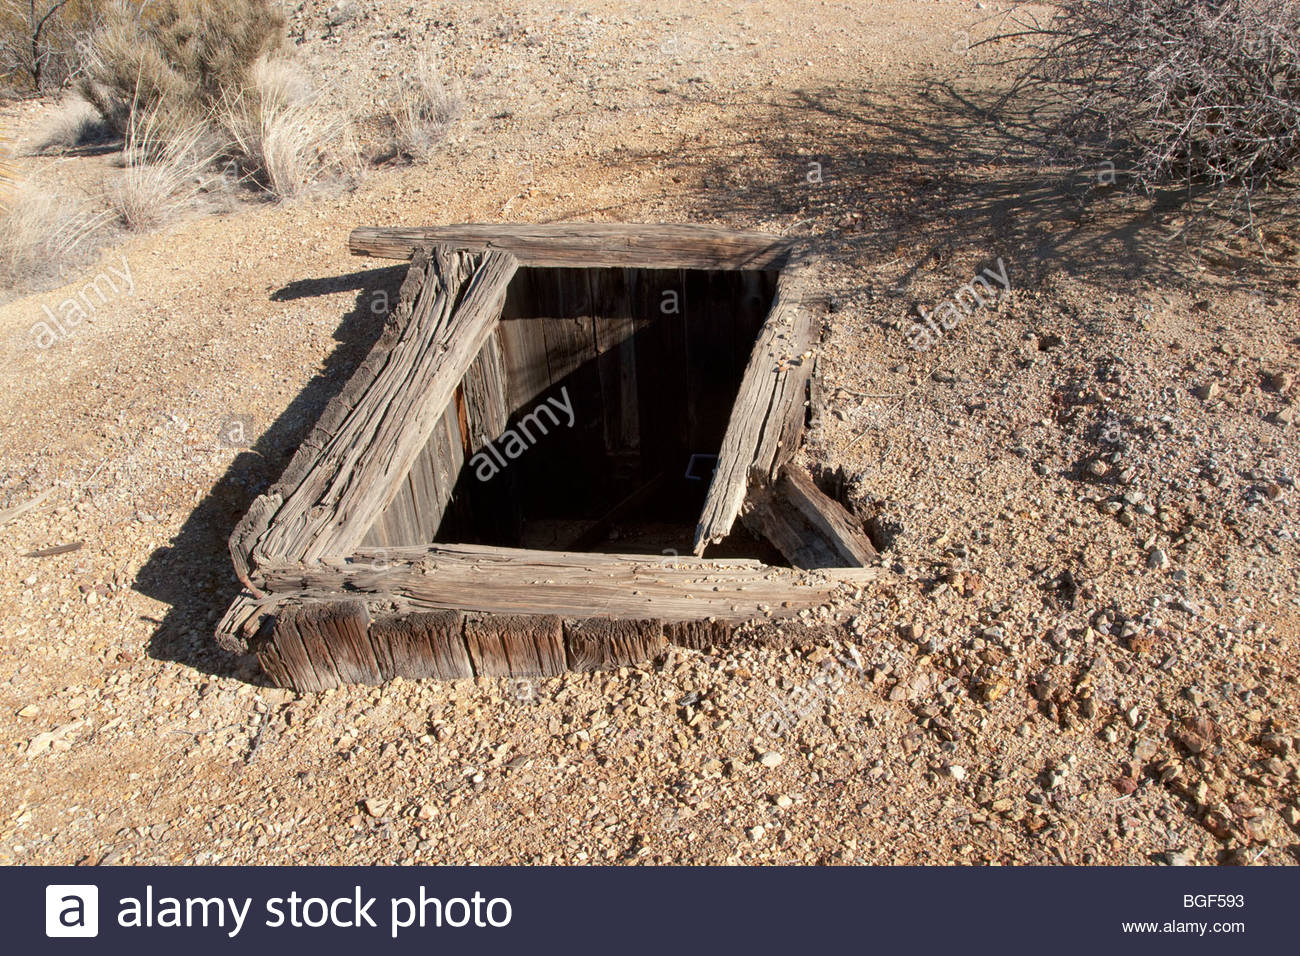 Abandoned unguarded mine shaft rotten timbers 'New Mexico' - Stock Image